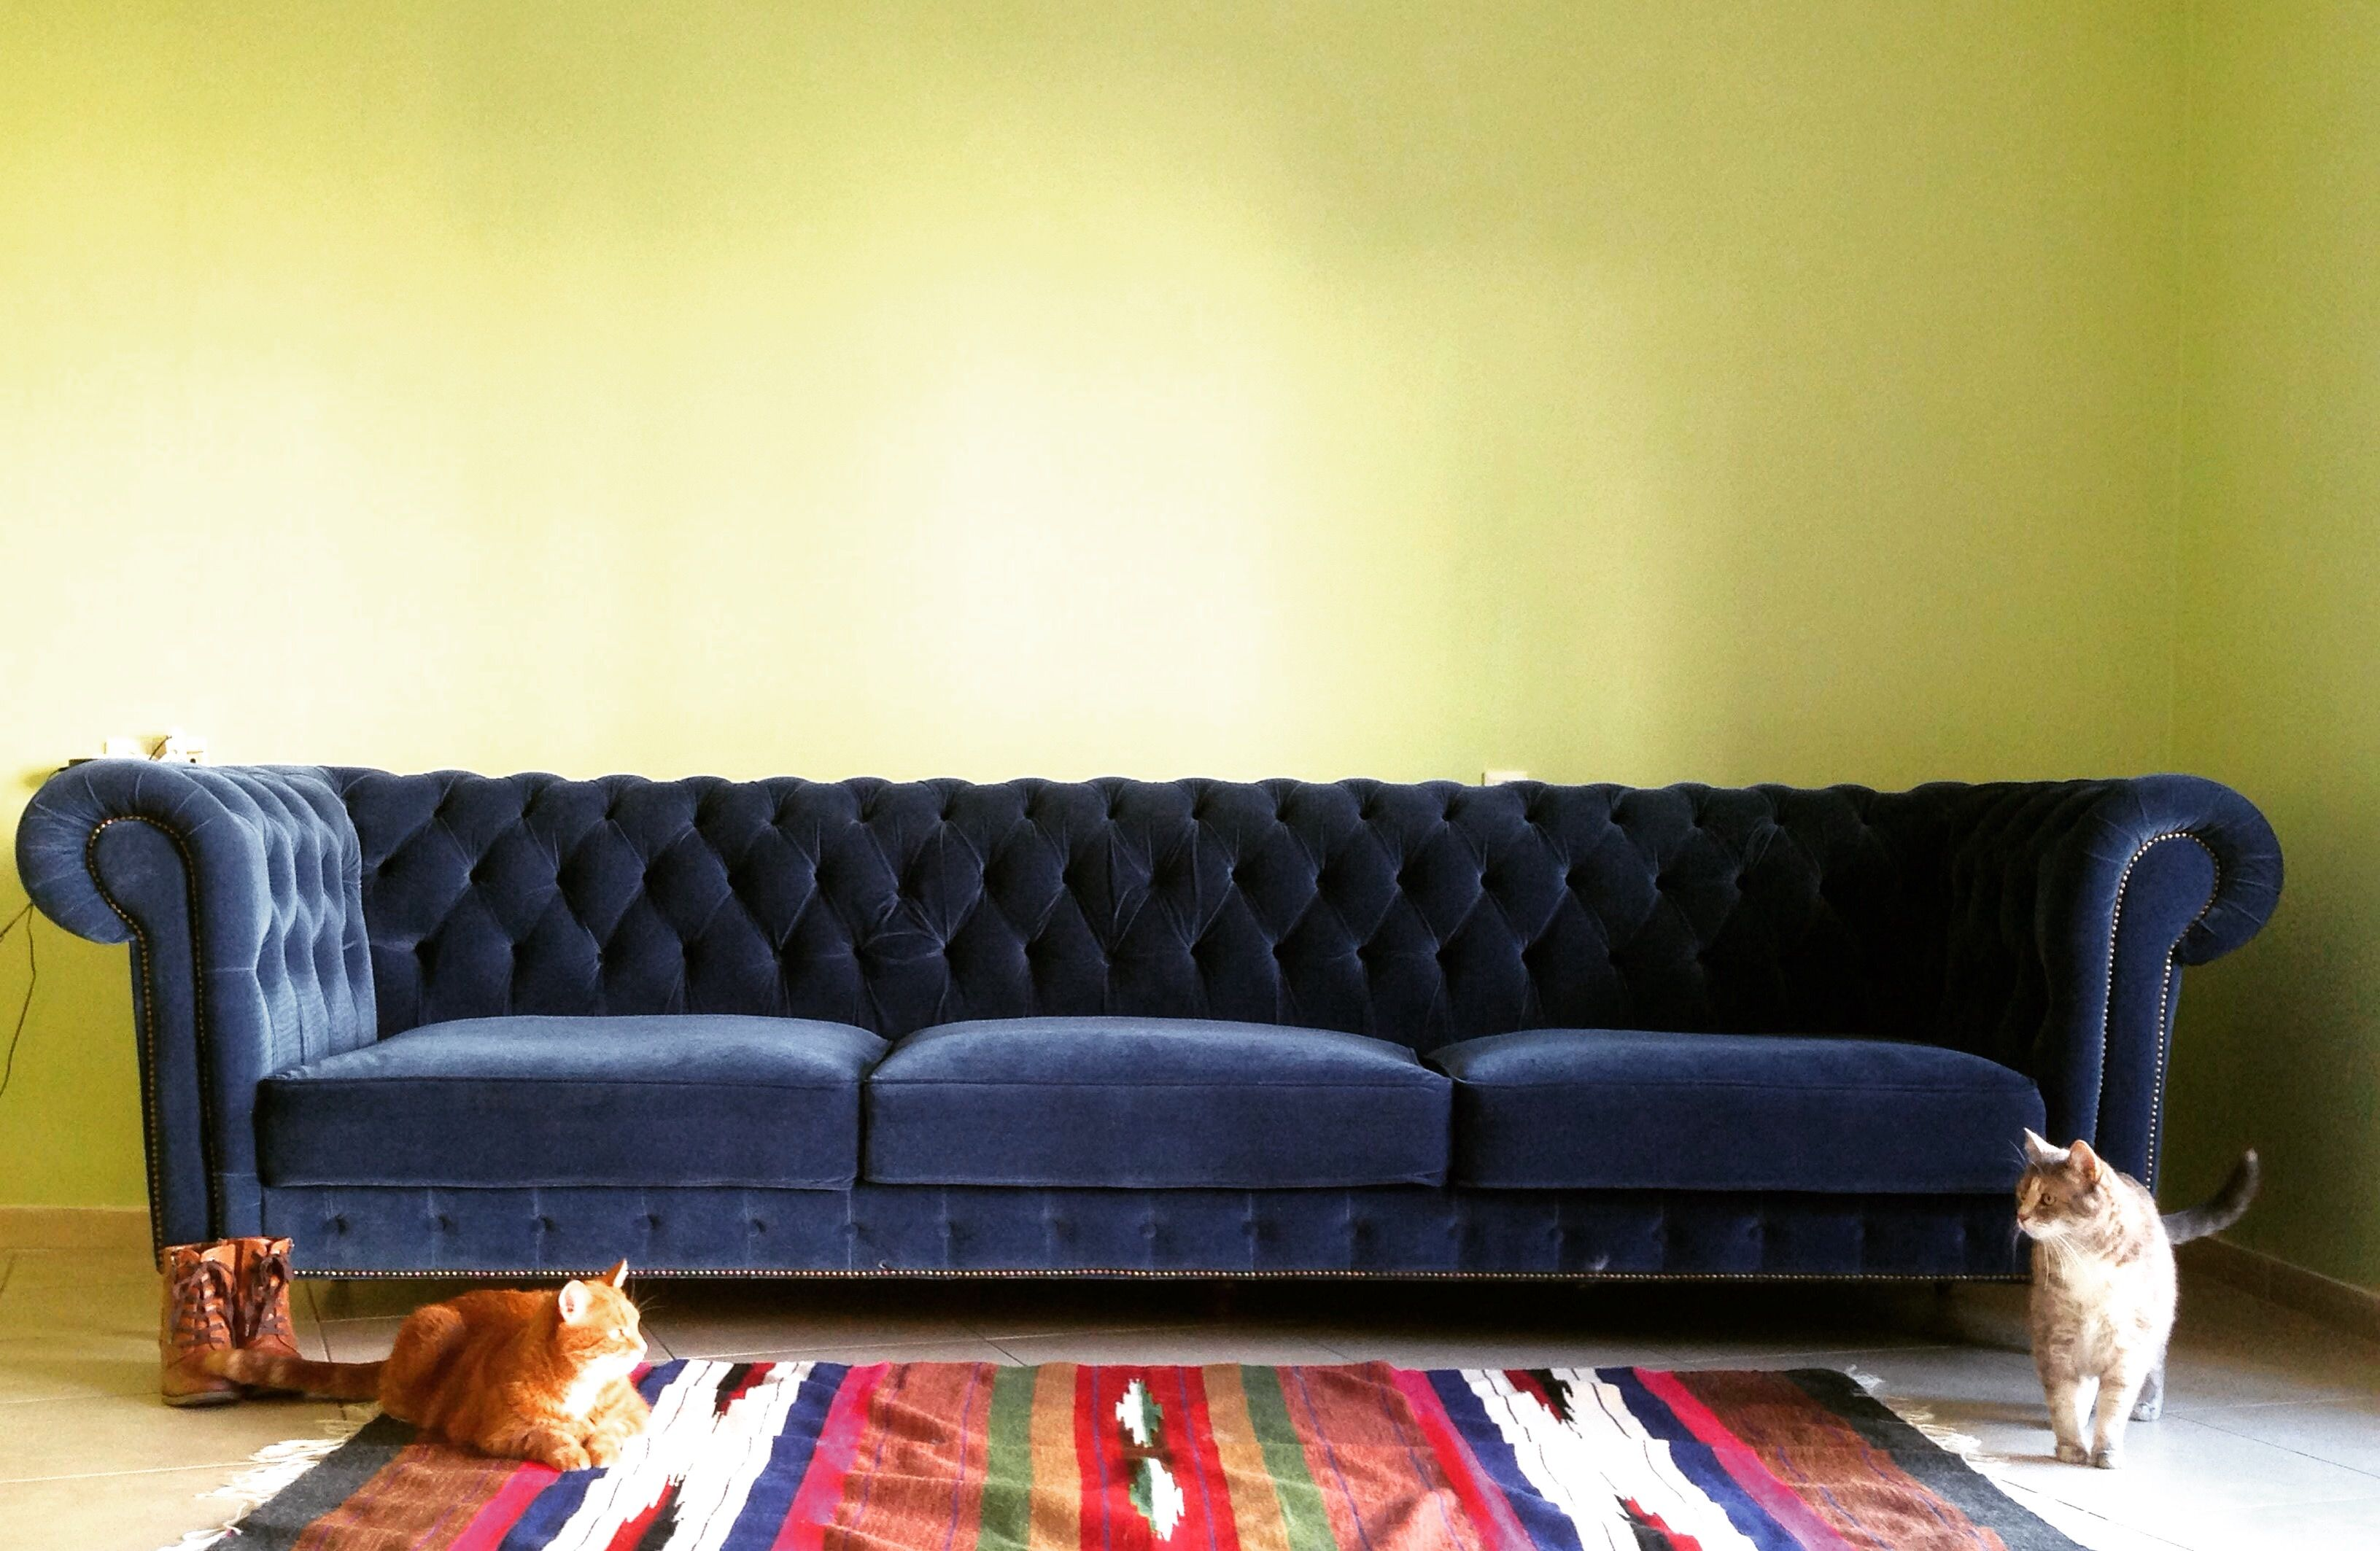 The Most Beautiful Sofa In The World